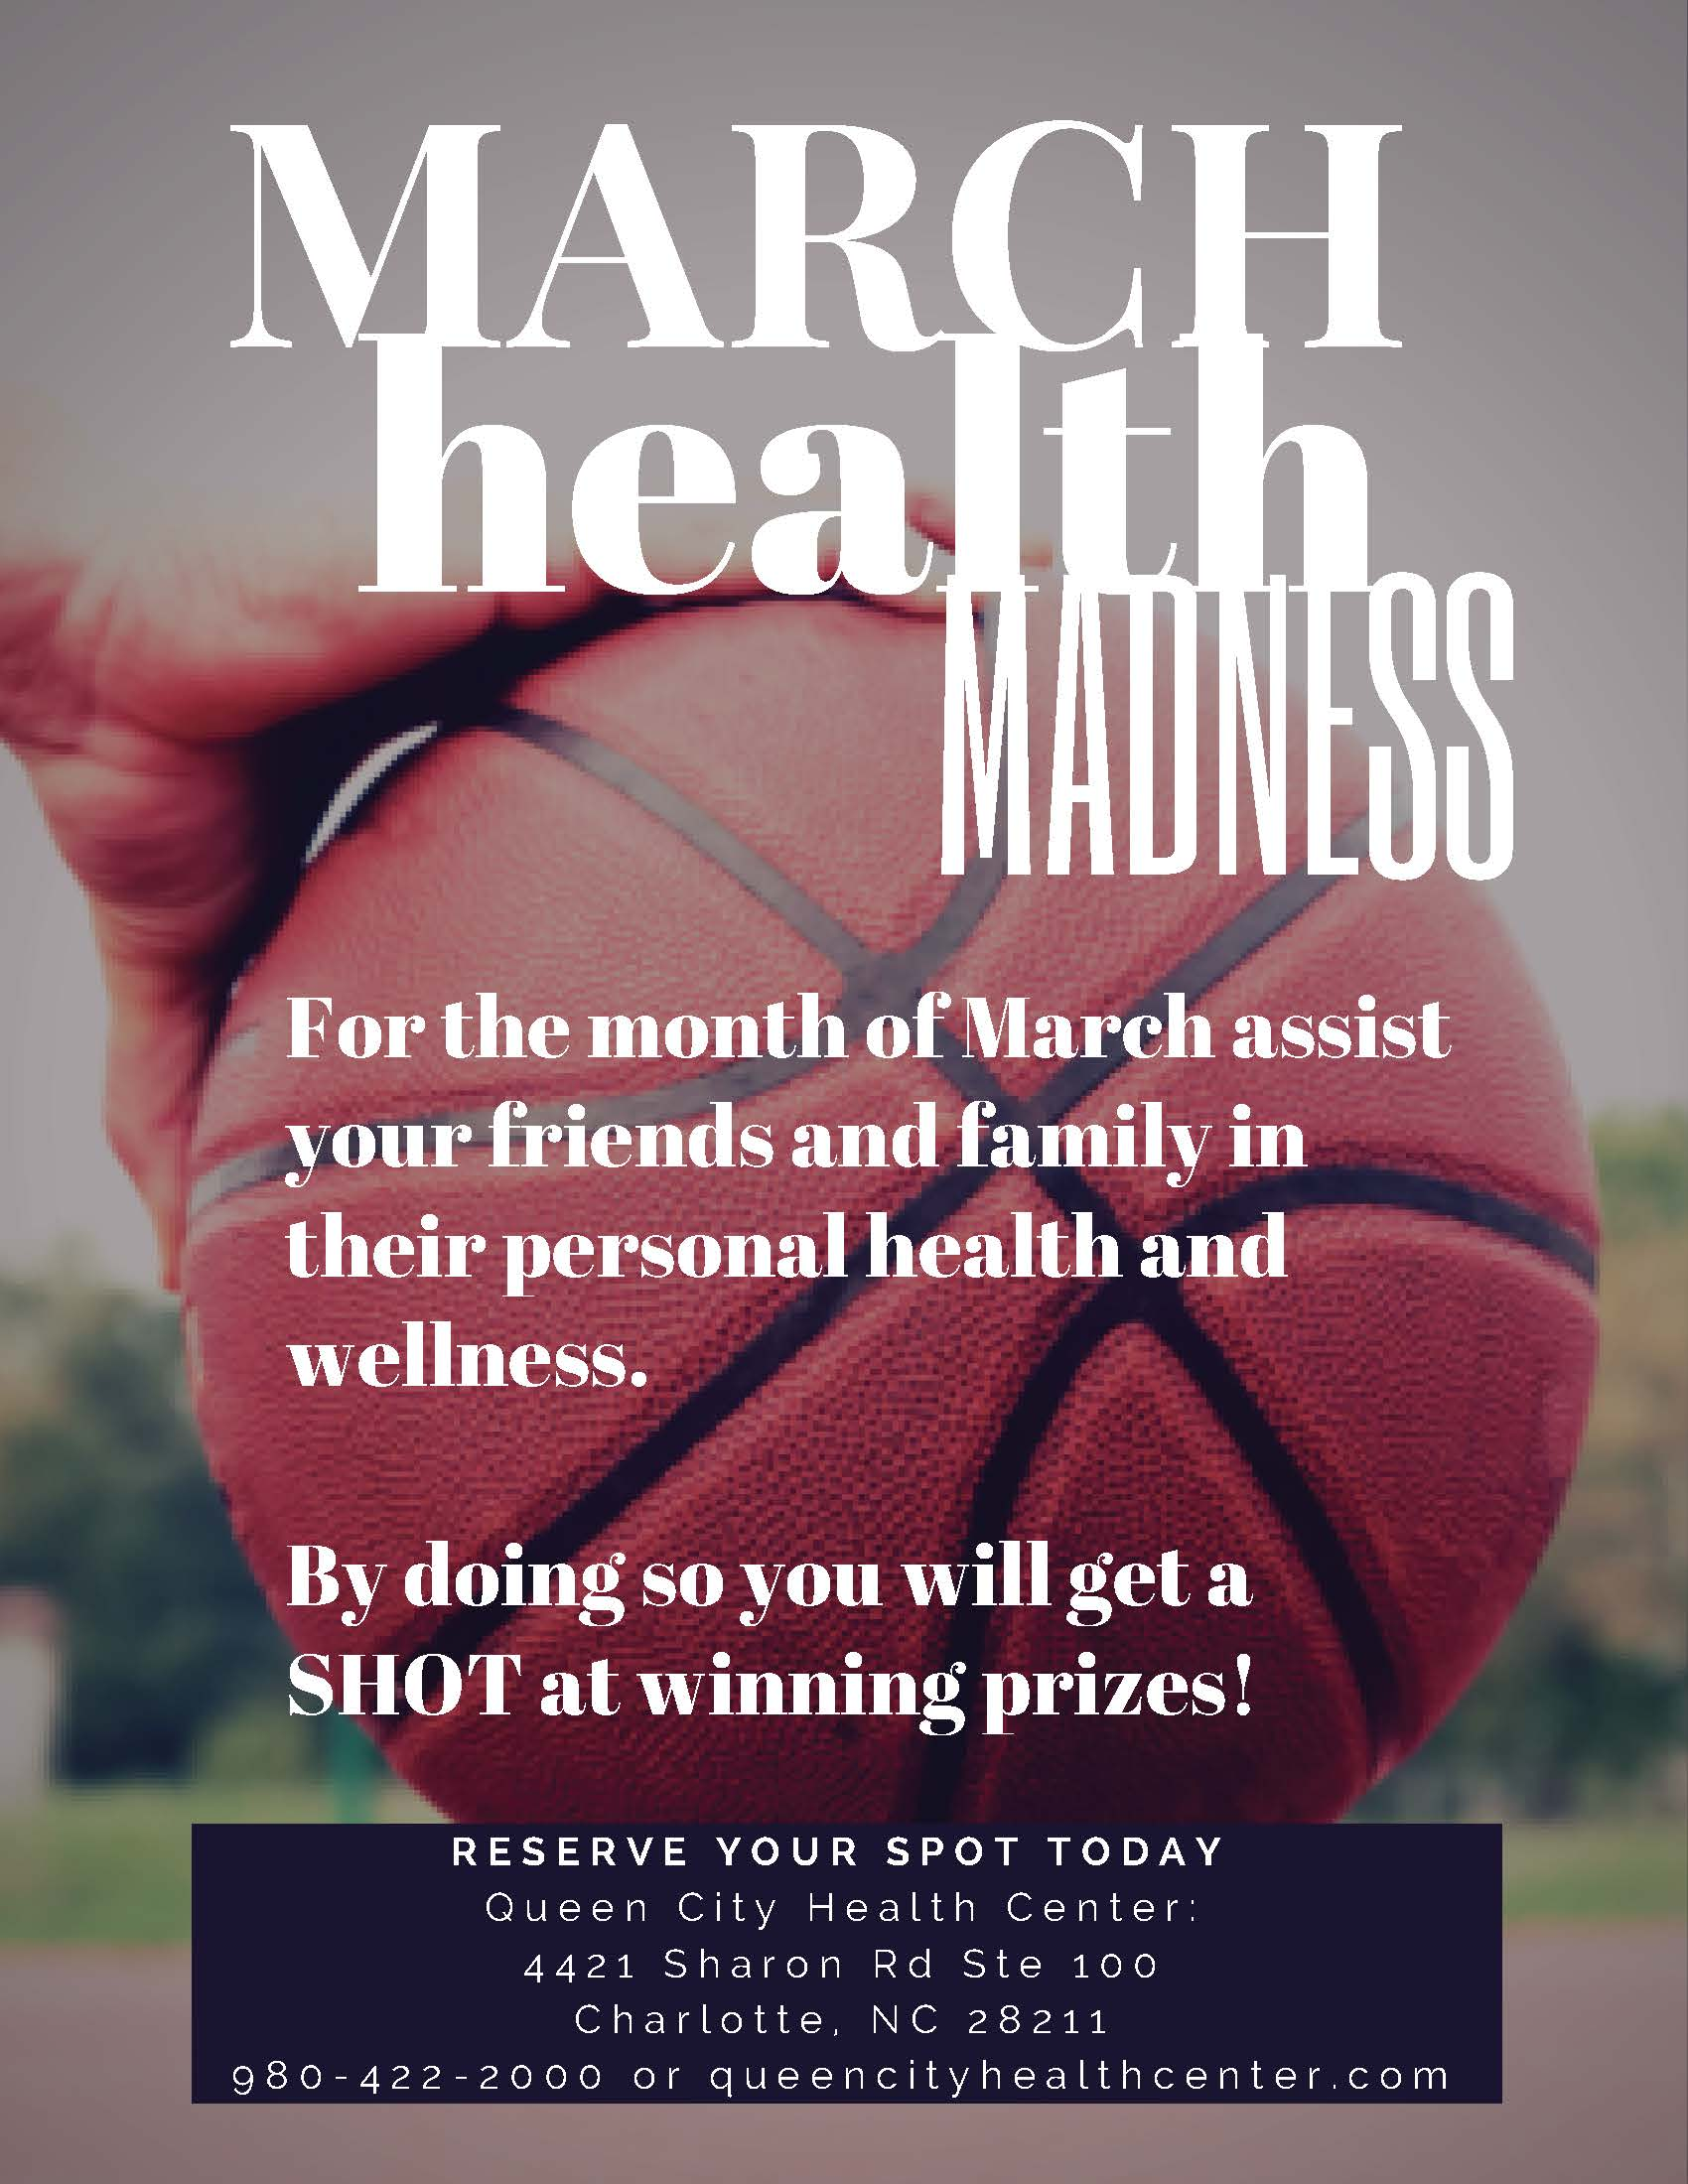 March Health Madness Queen City Health Center 4421 Sharon Rd #100, Charlotte, NC 28211 (980) 422-2000